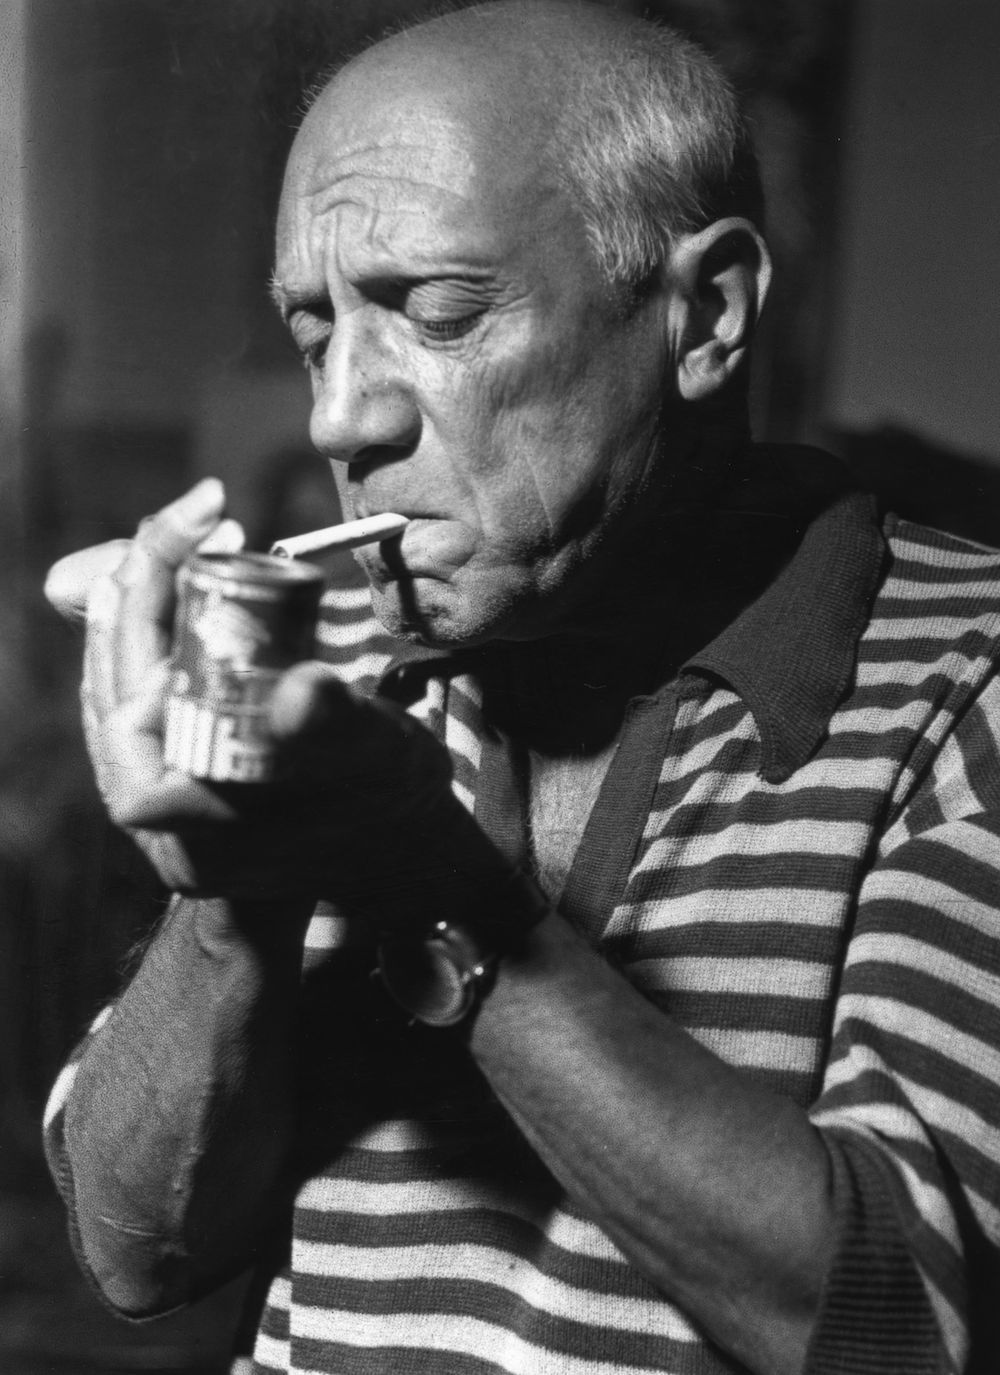 Picasso On Inspiration And The Magic Of Dust (1964) - Flashbak